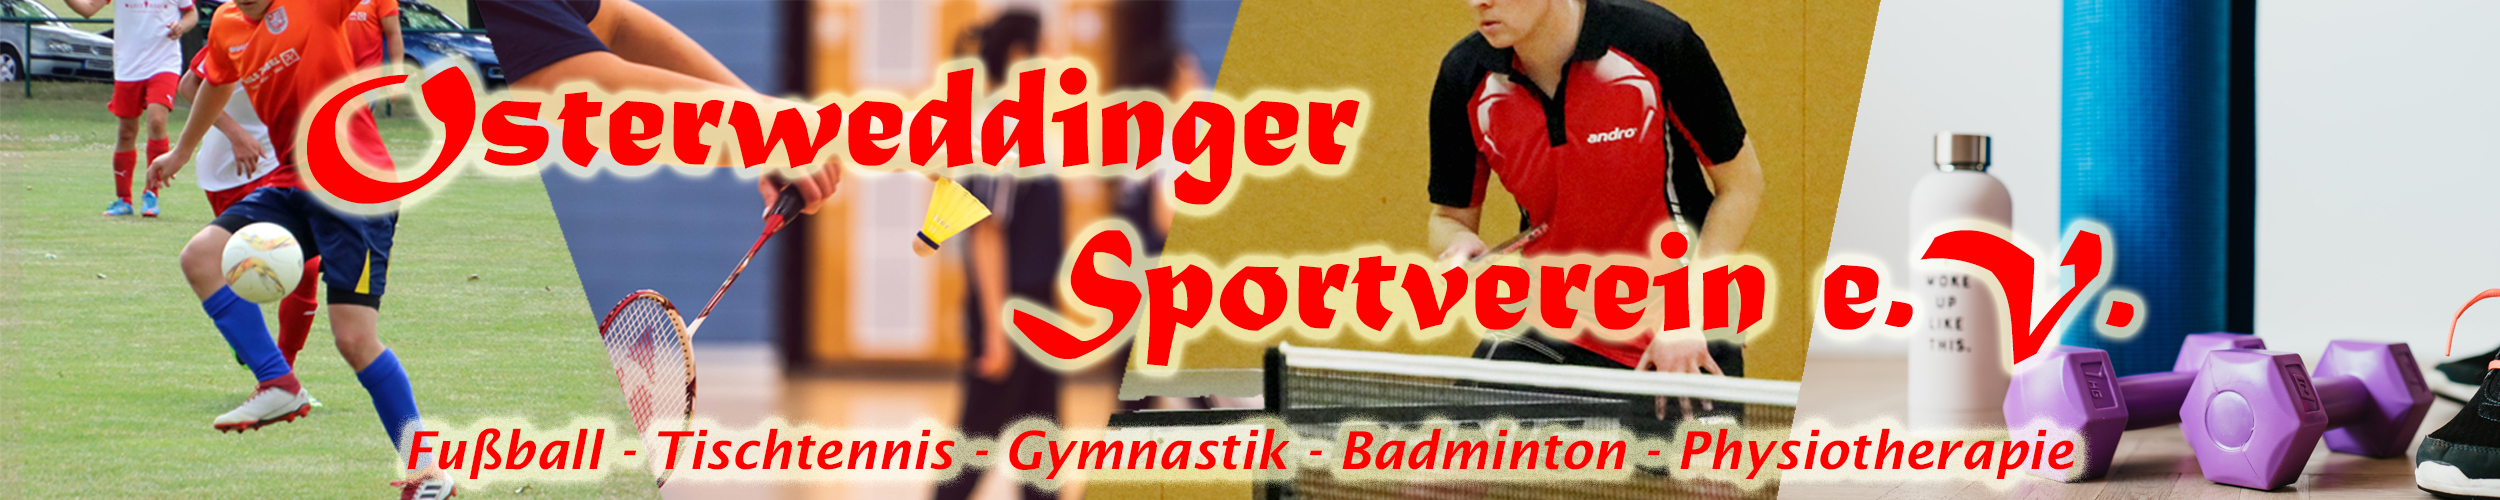 Osterweddinger Sportverein e.V.